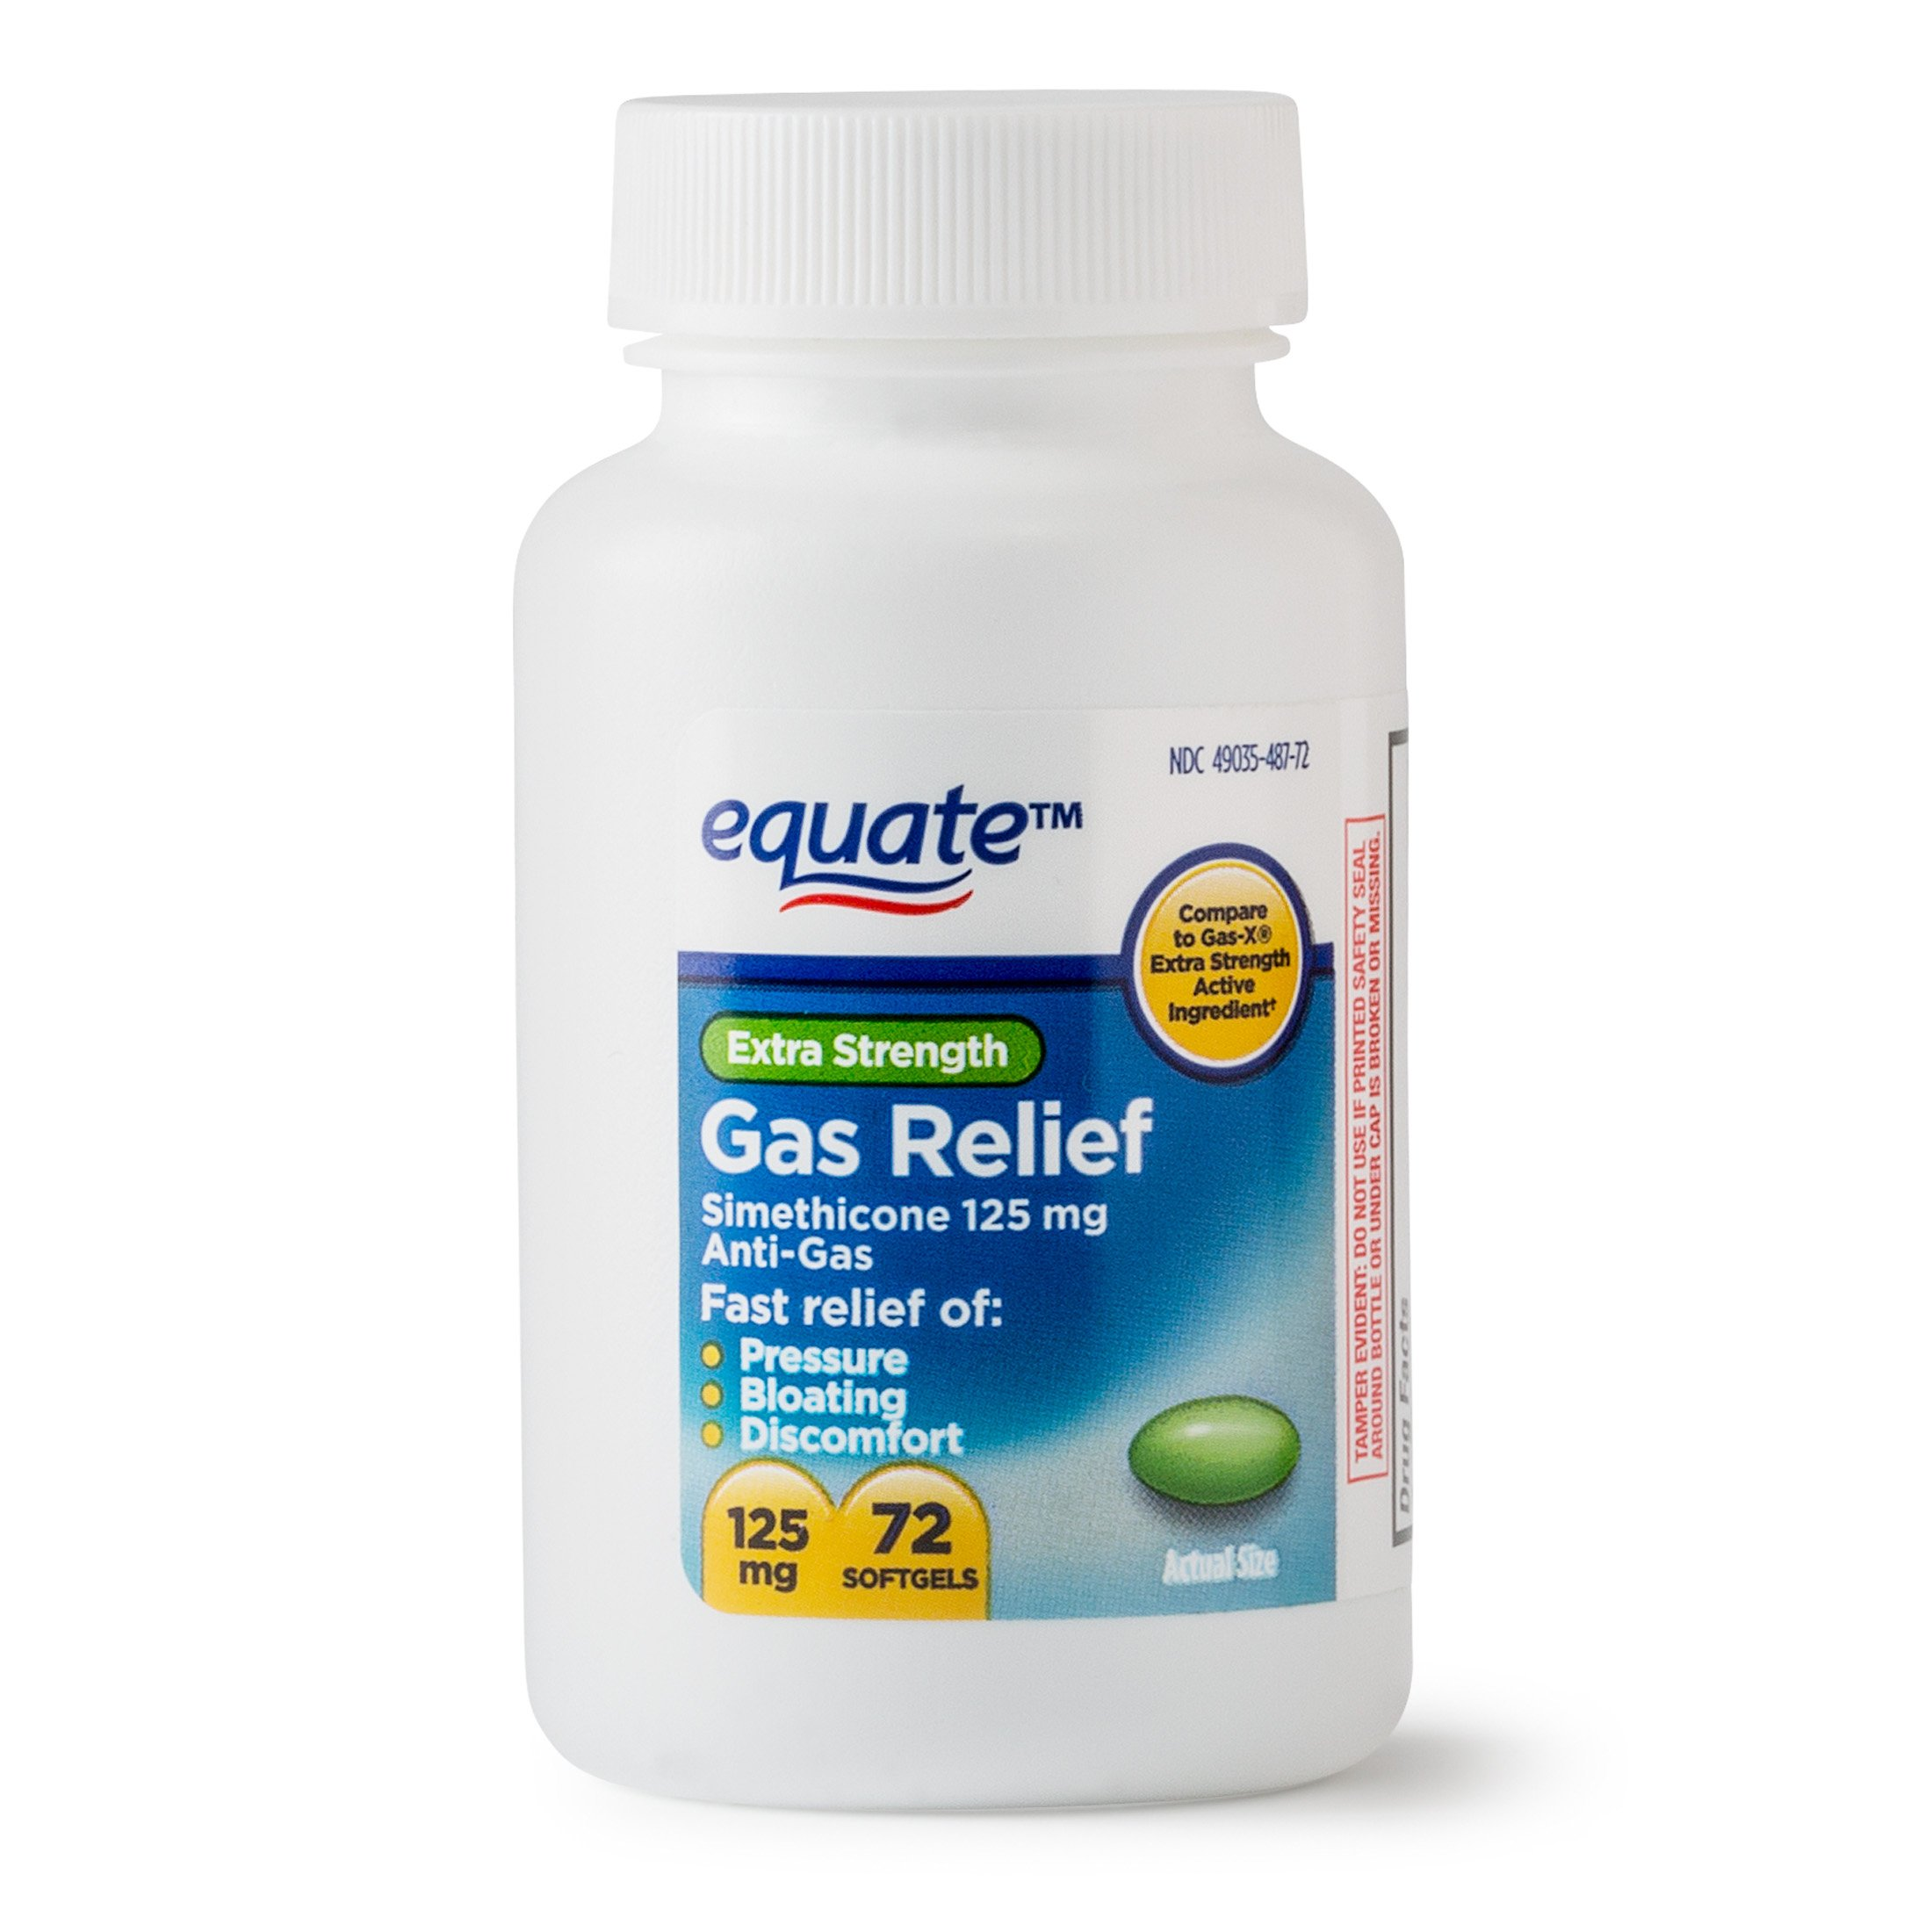 Equate - Gas Relief, Extra Strength, Simethicone 125 mg, 72 Softgels, Compare to Gas-X (2)